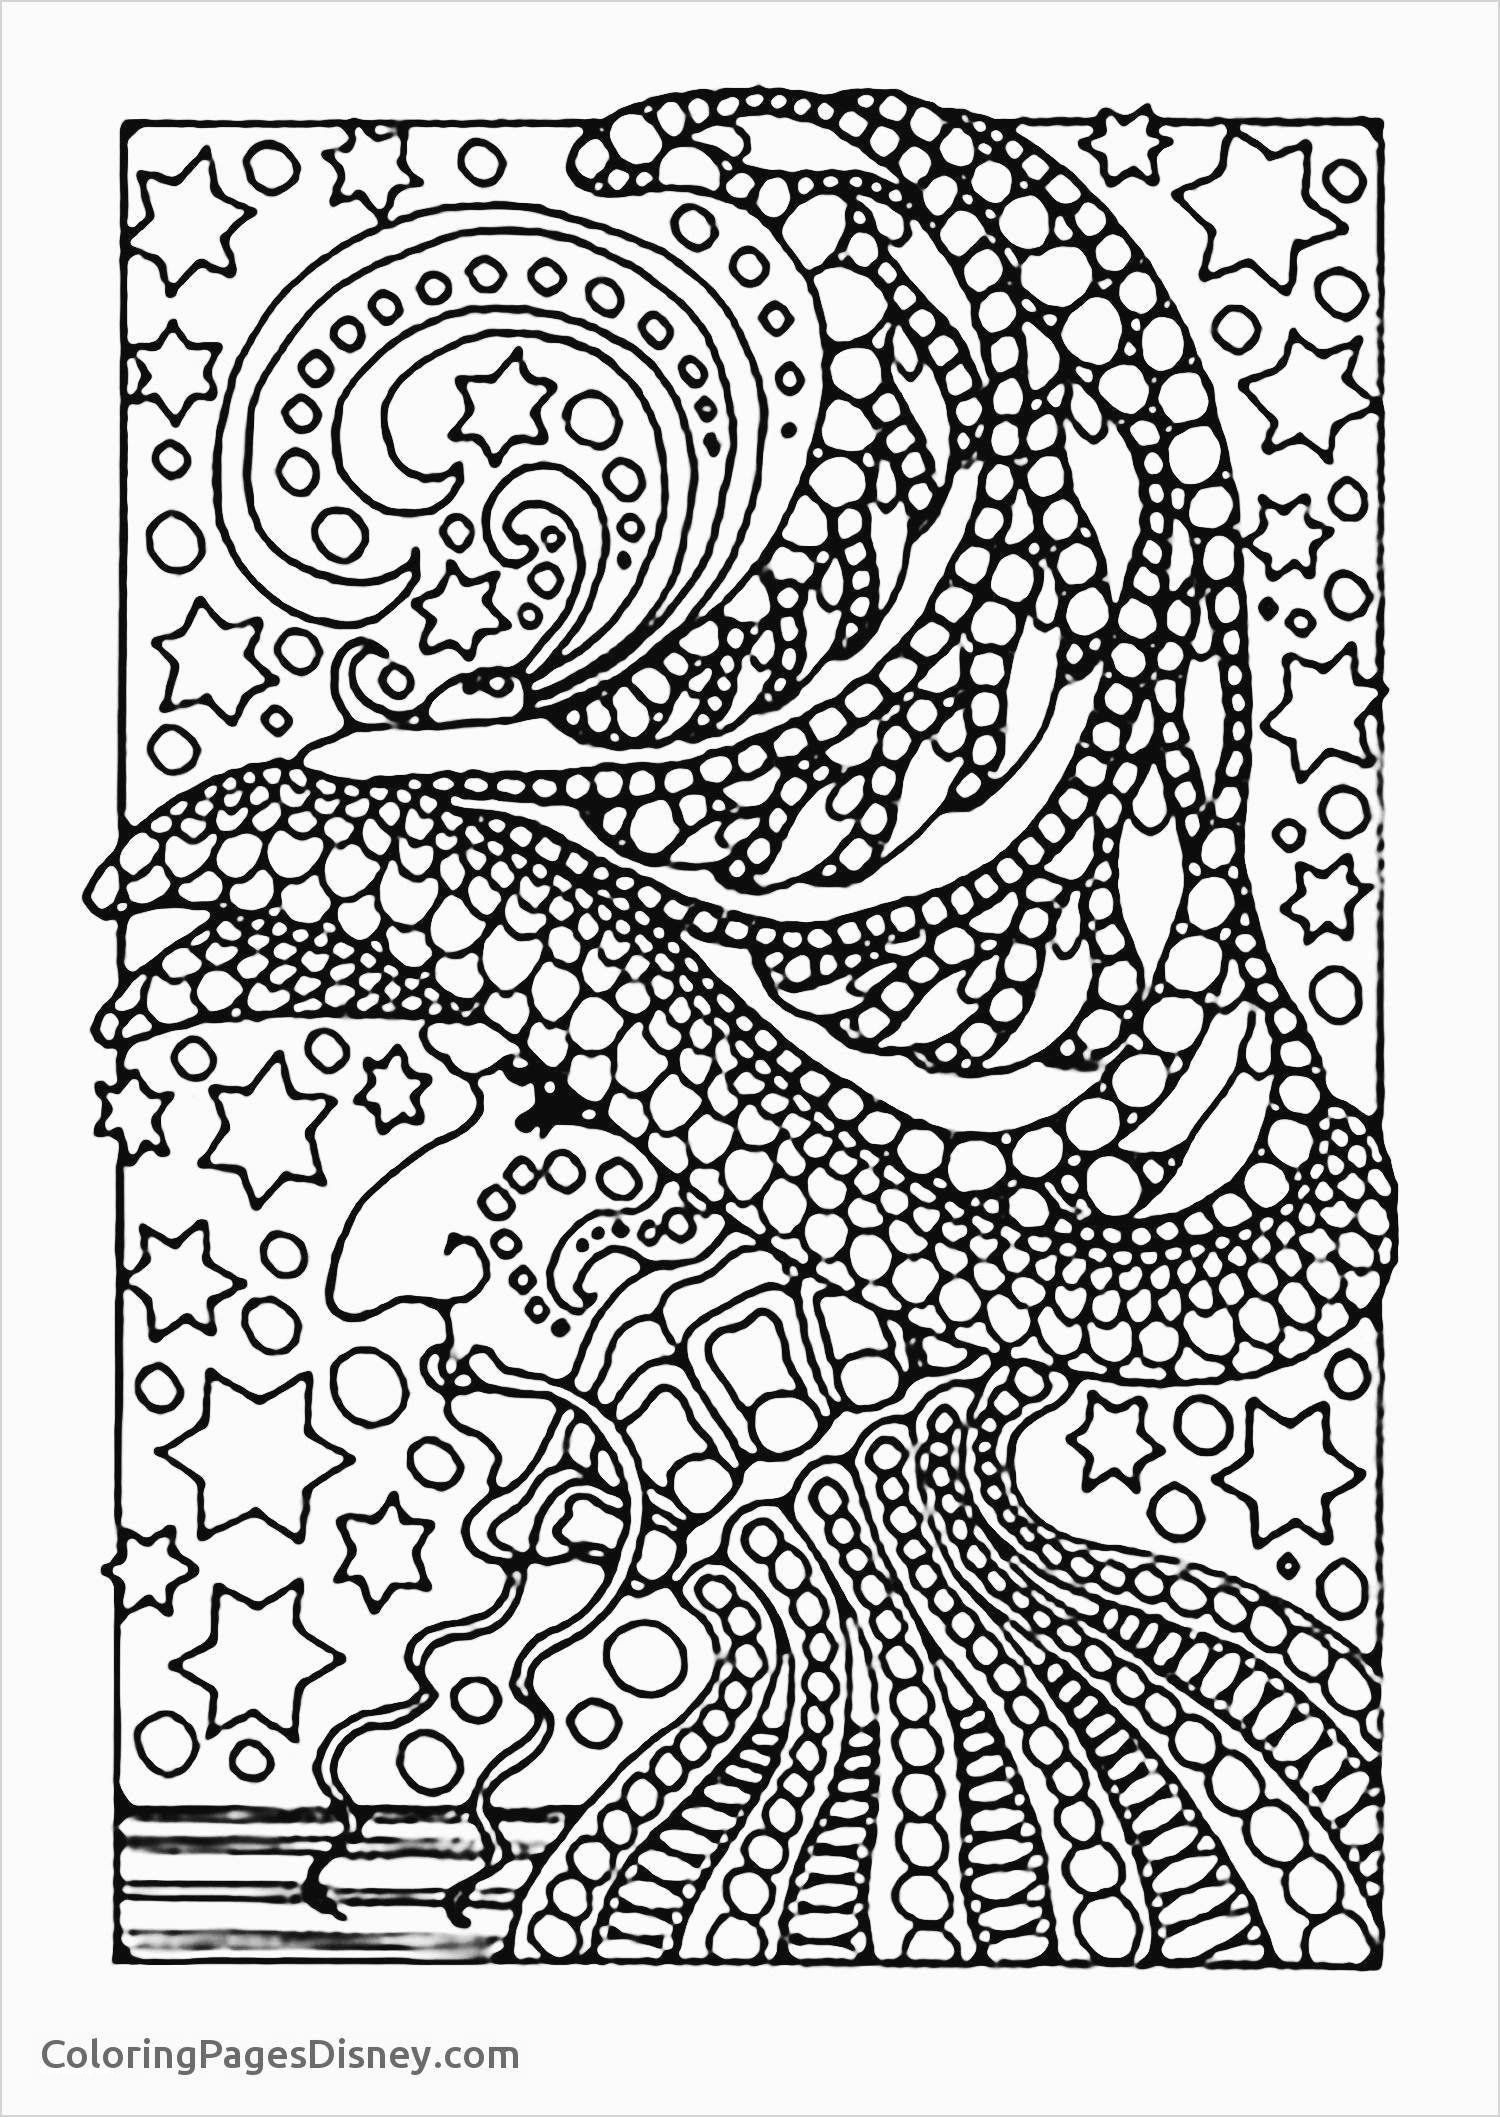 coloring pages : Color By Number Adult Coloring Pages Art Free Machine  Drawing Book Beautiful Luxury Adult Color By Color by Number Adult Coloring  Pages ~ affiliateprogrambook.com